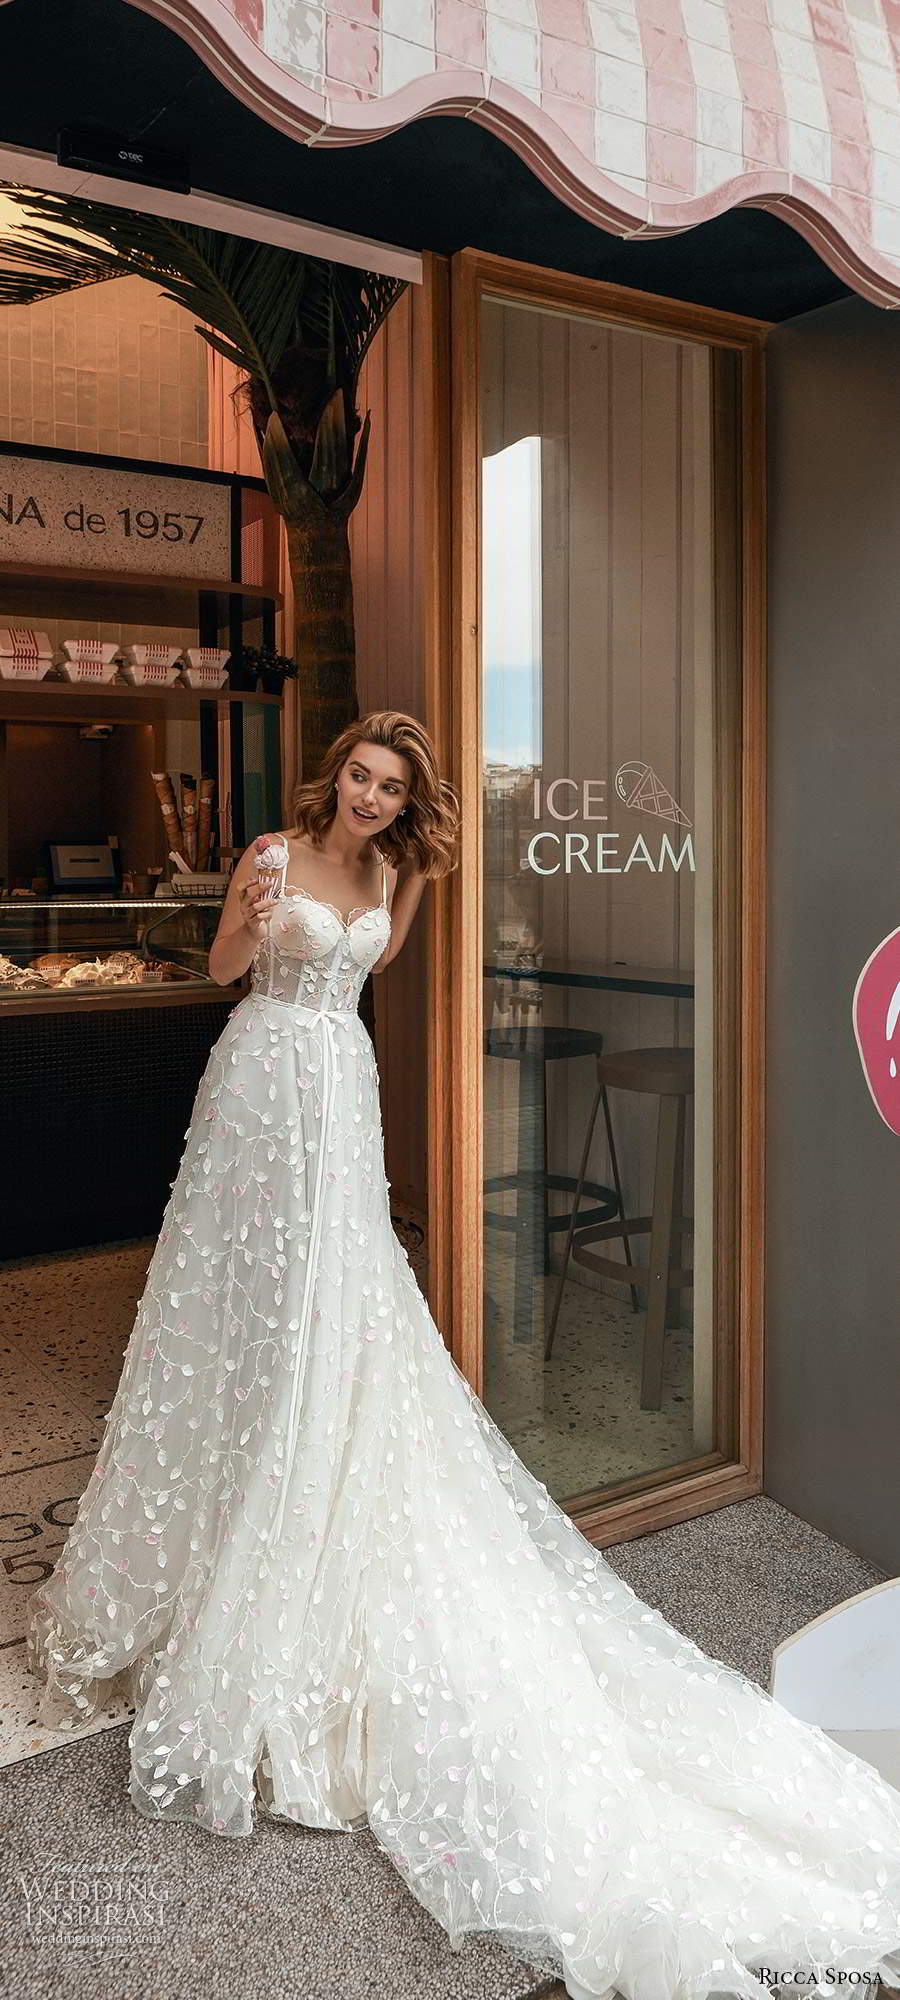 ricca sposa 2020 barcelona bridal sleeveless thin straps sweetheart neckline sheer bodice fully embellished romantic a line ball gown wedding dress cathedral train (8) mv